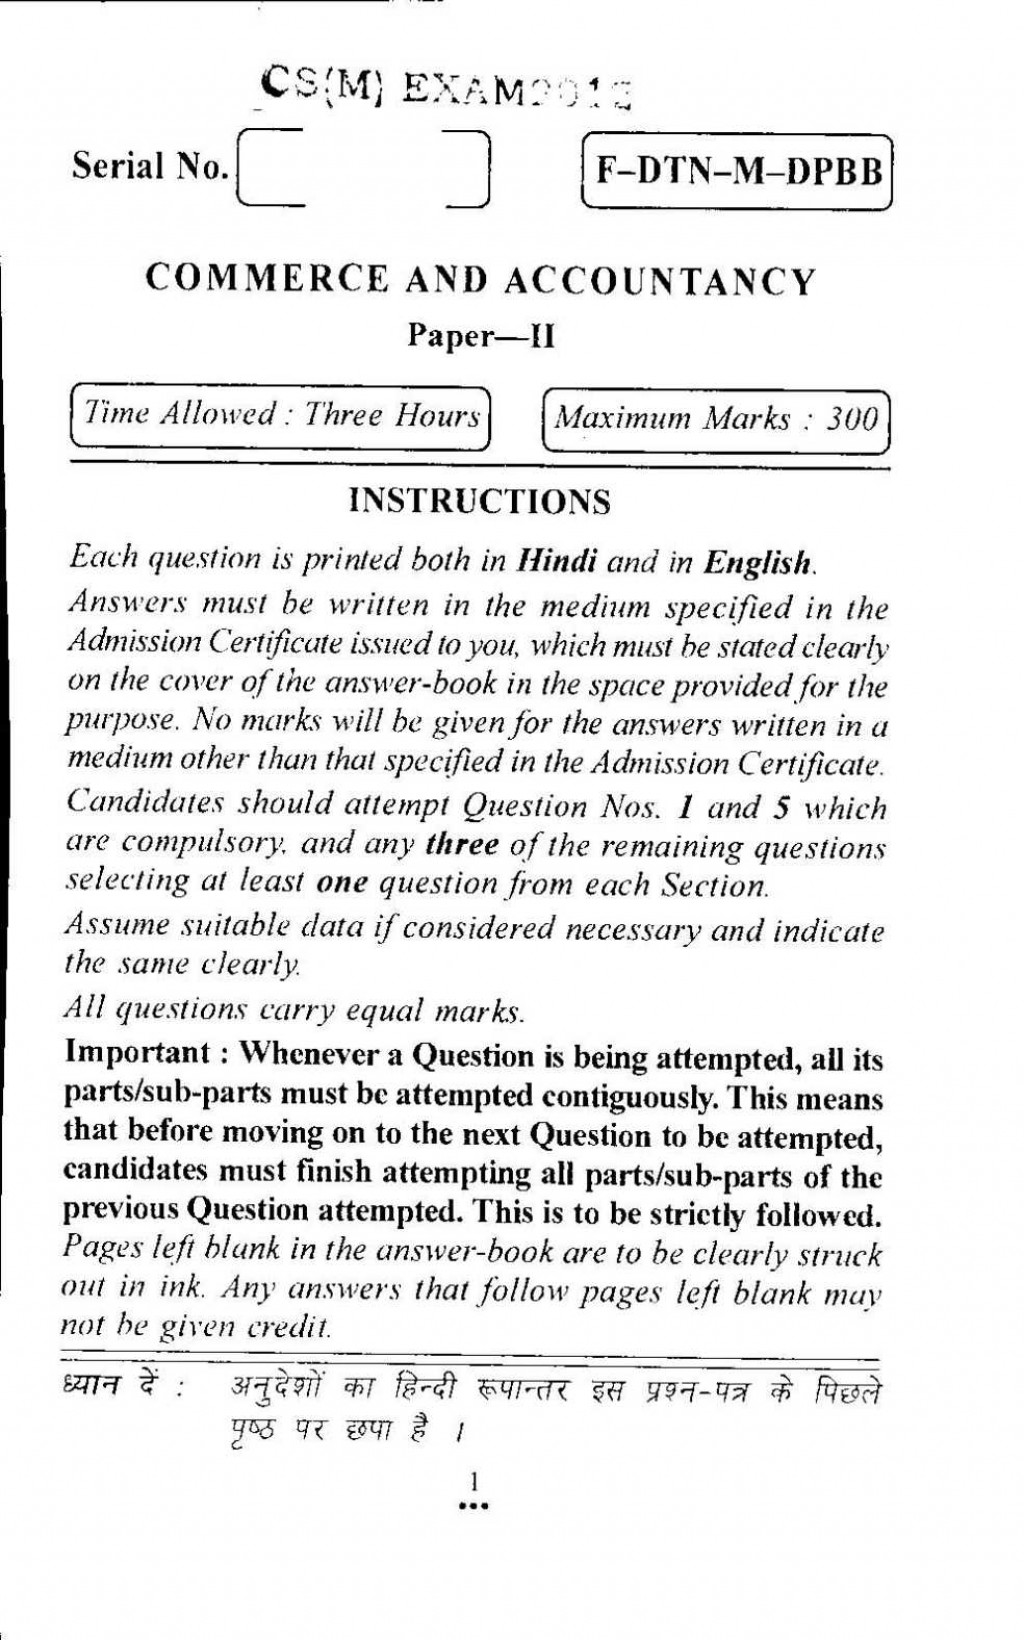 014 What Is An American Essay Example Civil Services Examination Commerce And Accountancy Paper Ii Previous Years Que Stupendous Thesis Your Dream Ideas Large